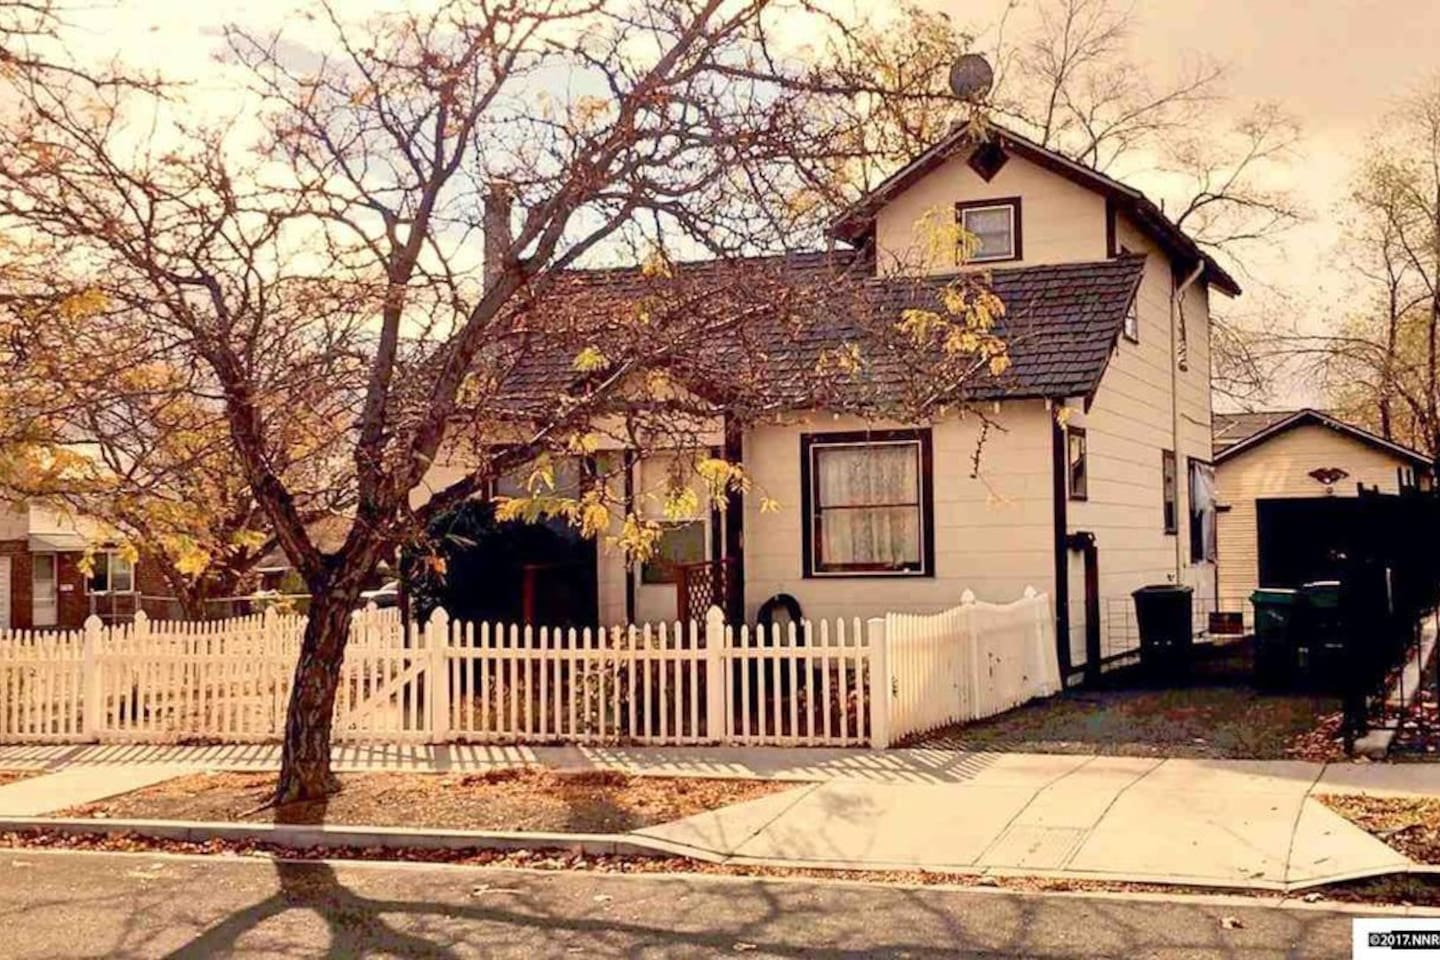 A charming cottage with a white picket fence.